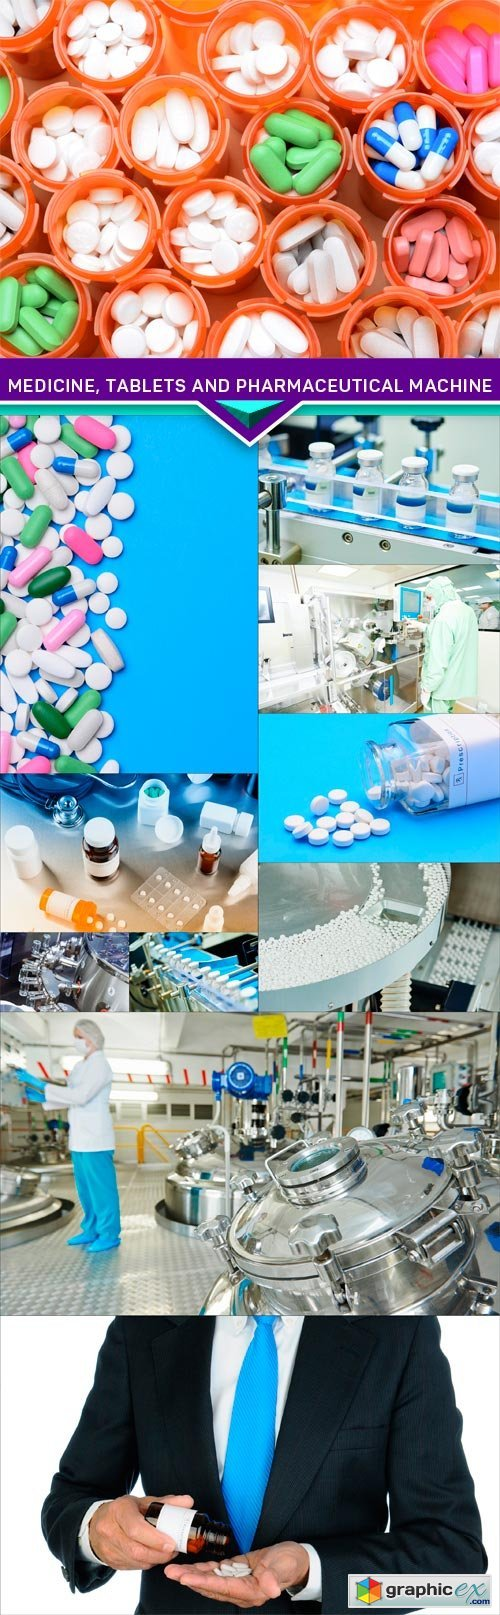 Medicine, tablets and pharmaceutical machine 11X JPEG